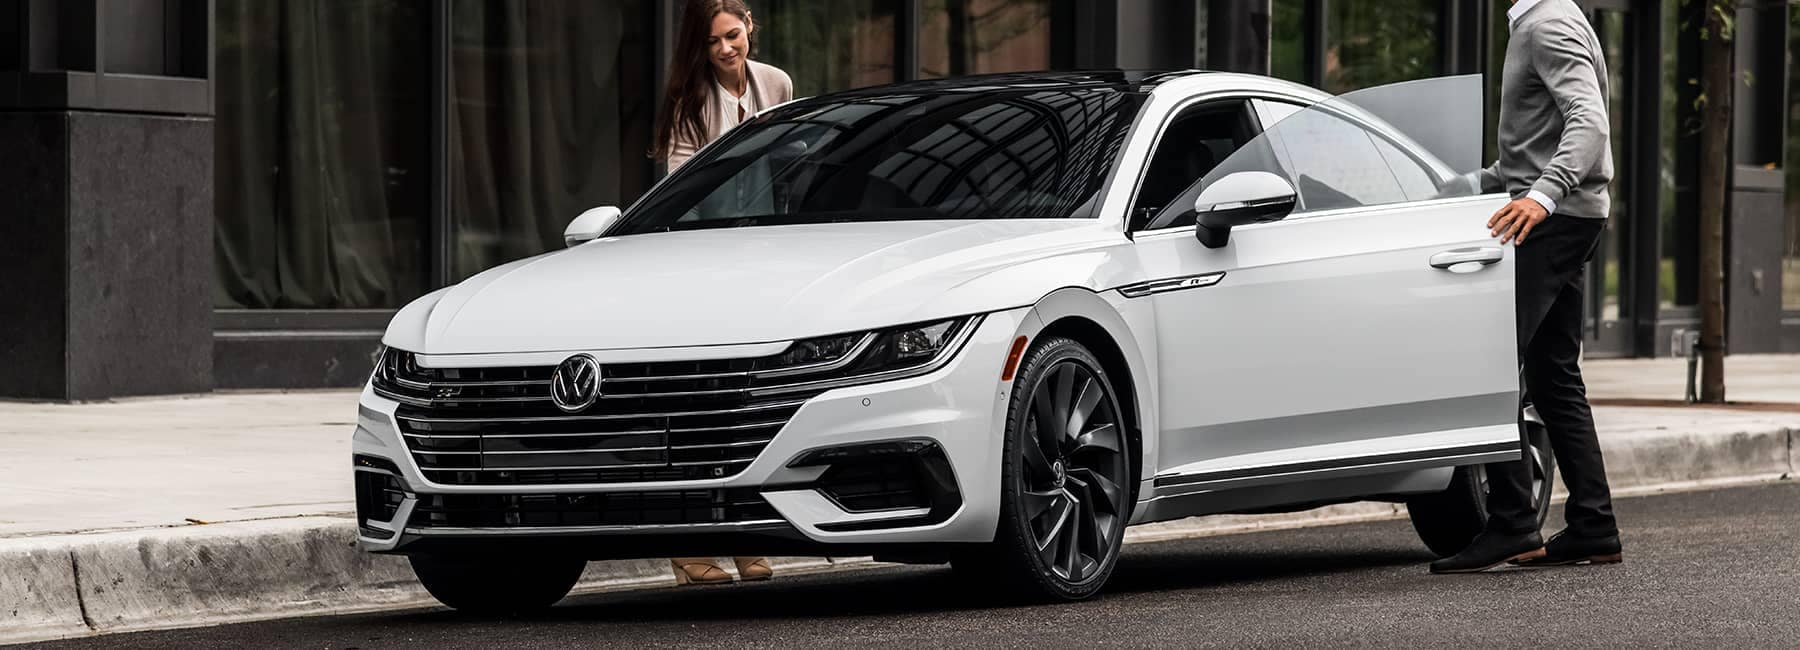 2020 VW White Arteon parked in city with a man and woman climbing inside